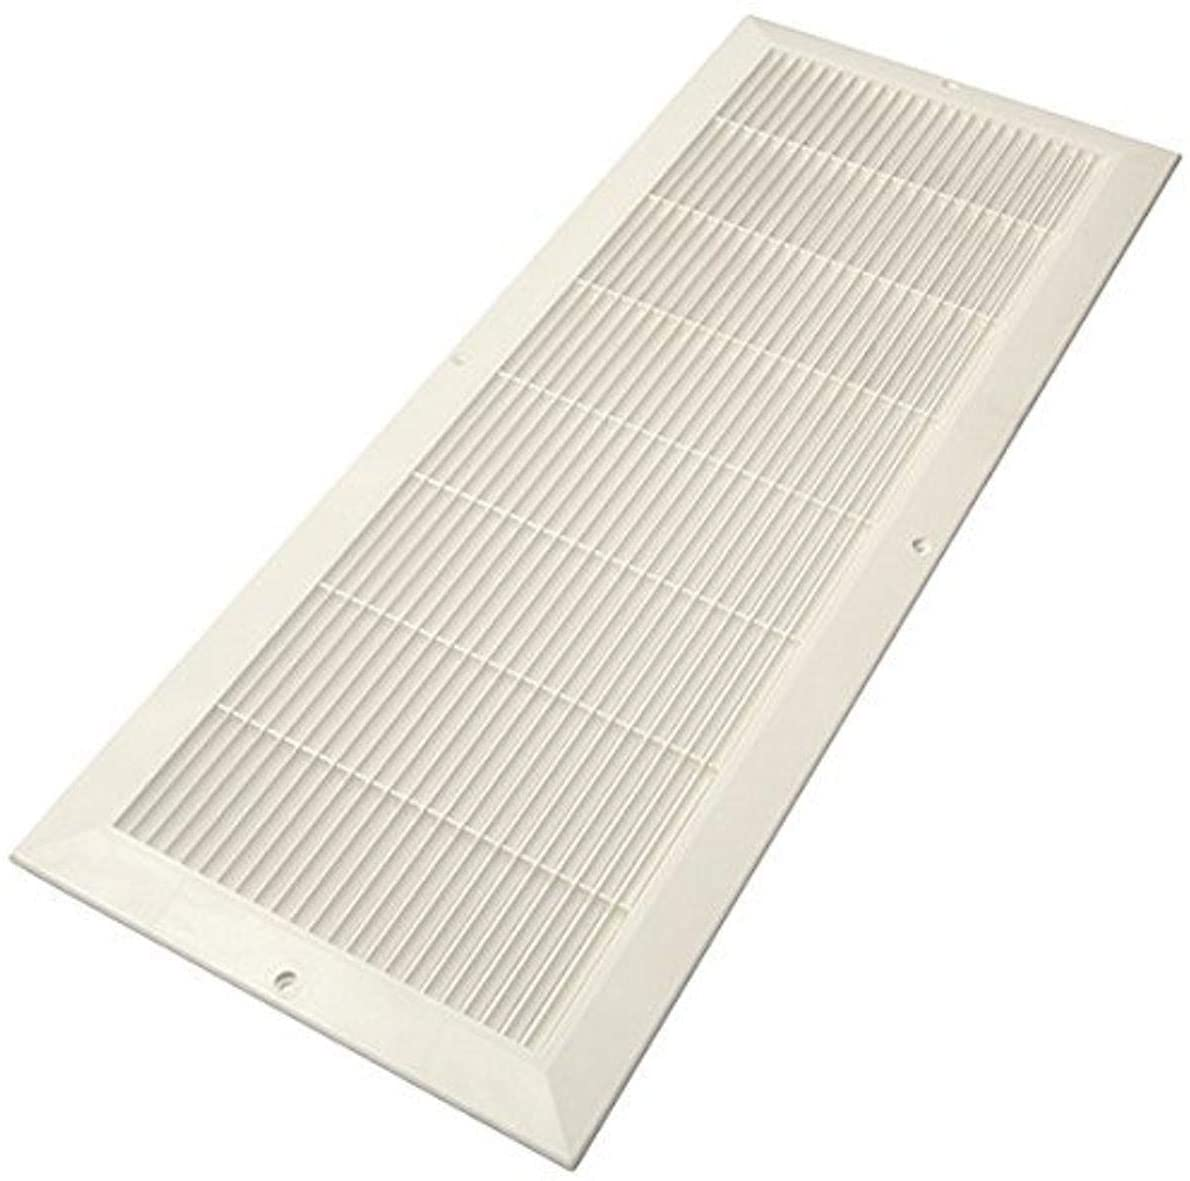 Decor Grates PL824-WH 8-Inch by 24-Inch Cold Air Return, White